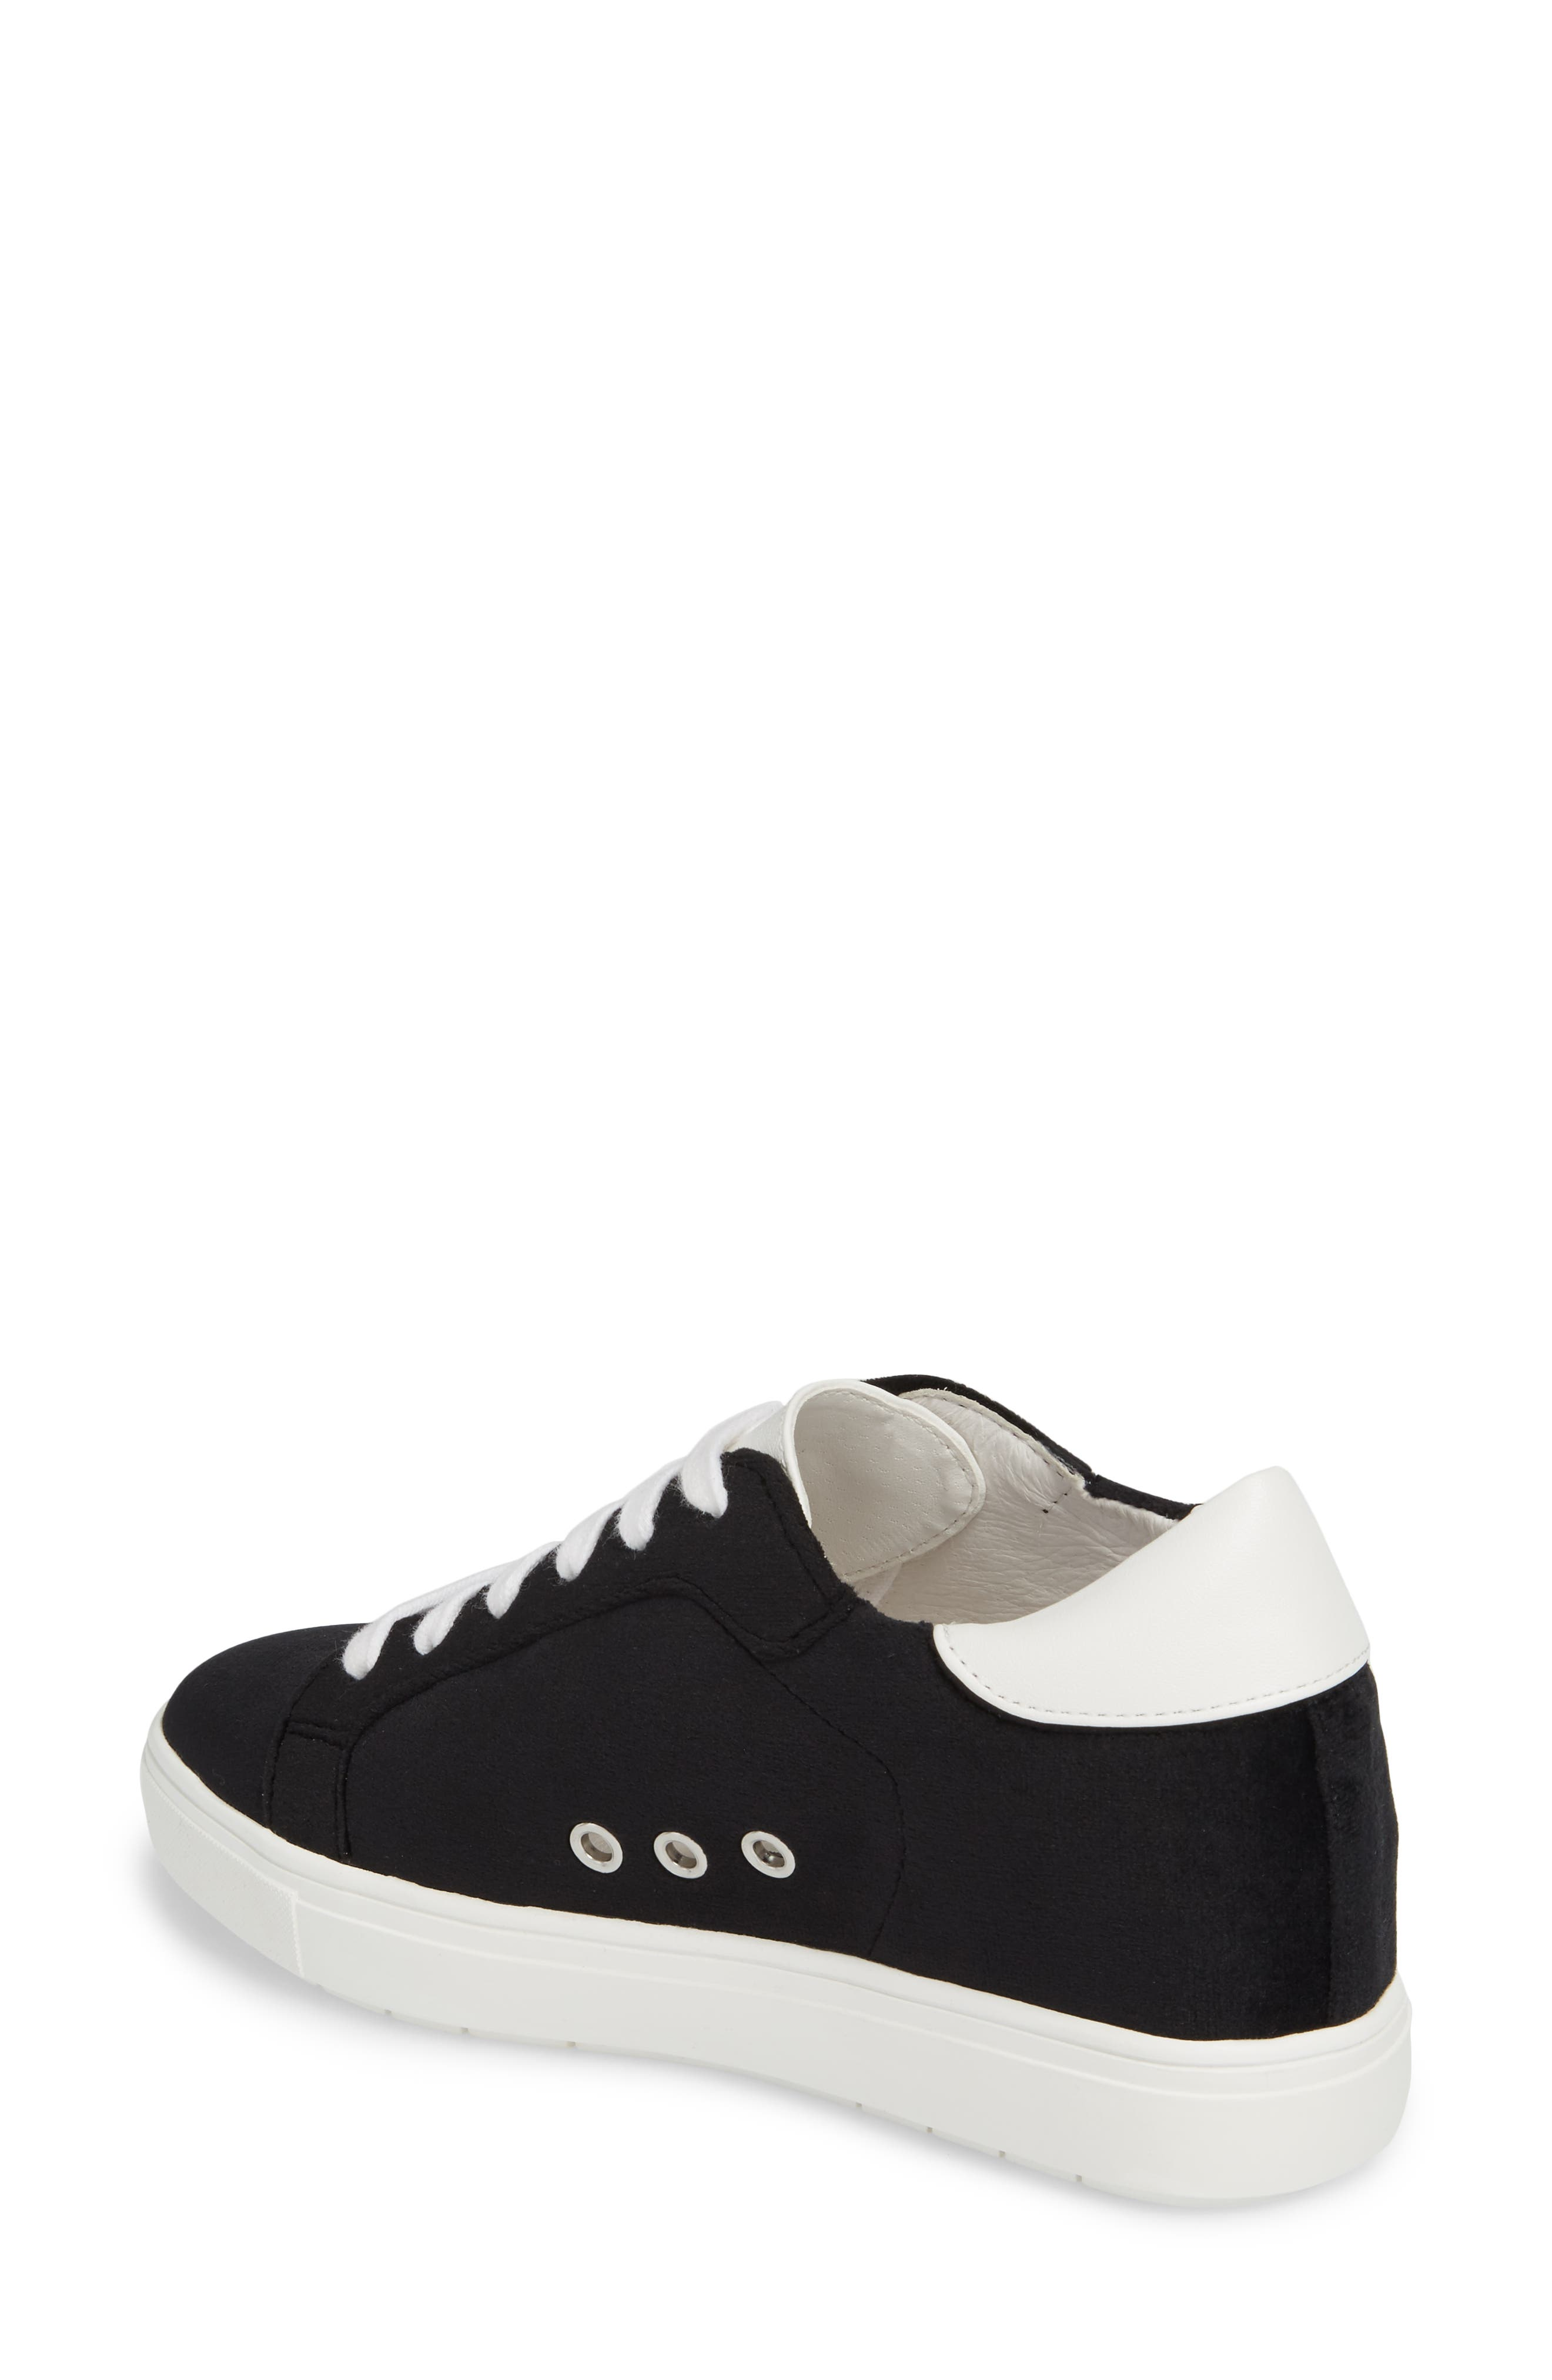 Steal Concealed Wedge Sneaker,                             Alternate thumbnail 5, color,